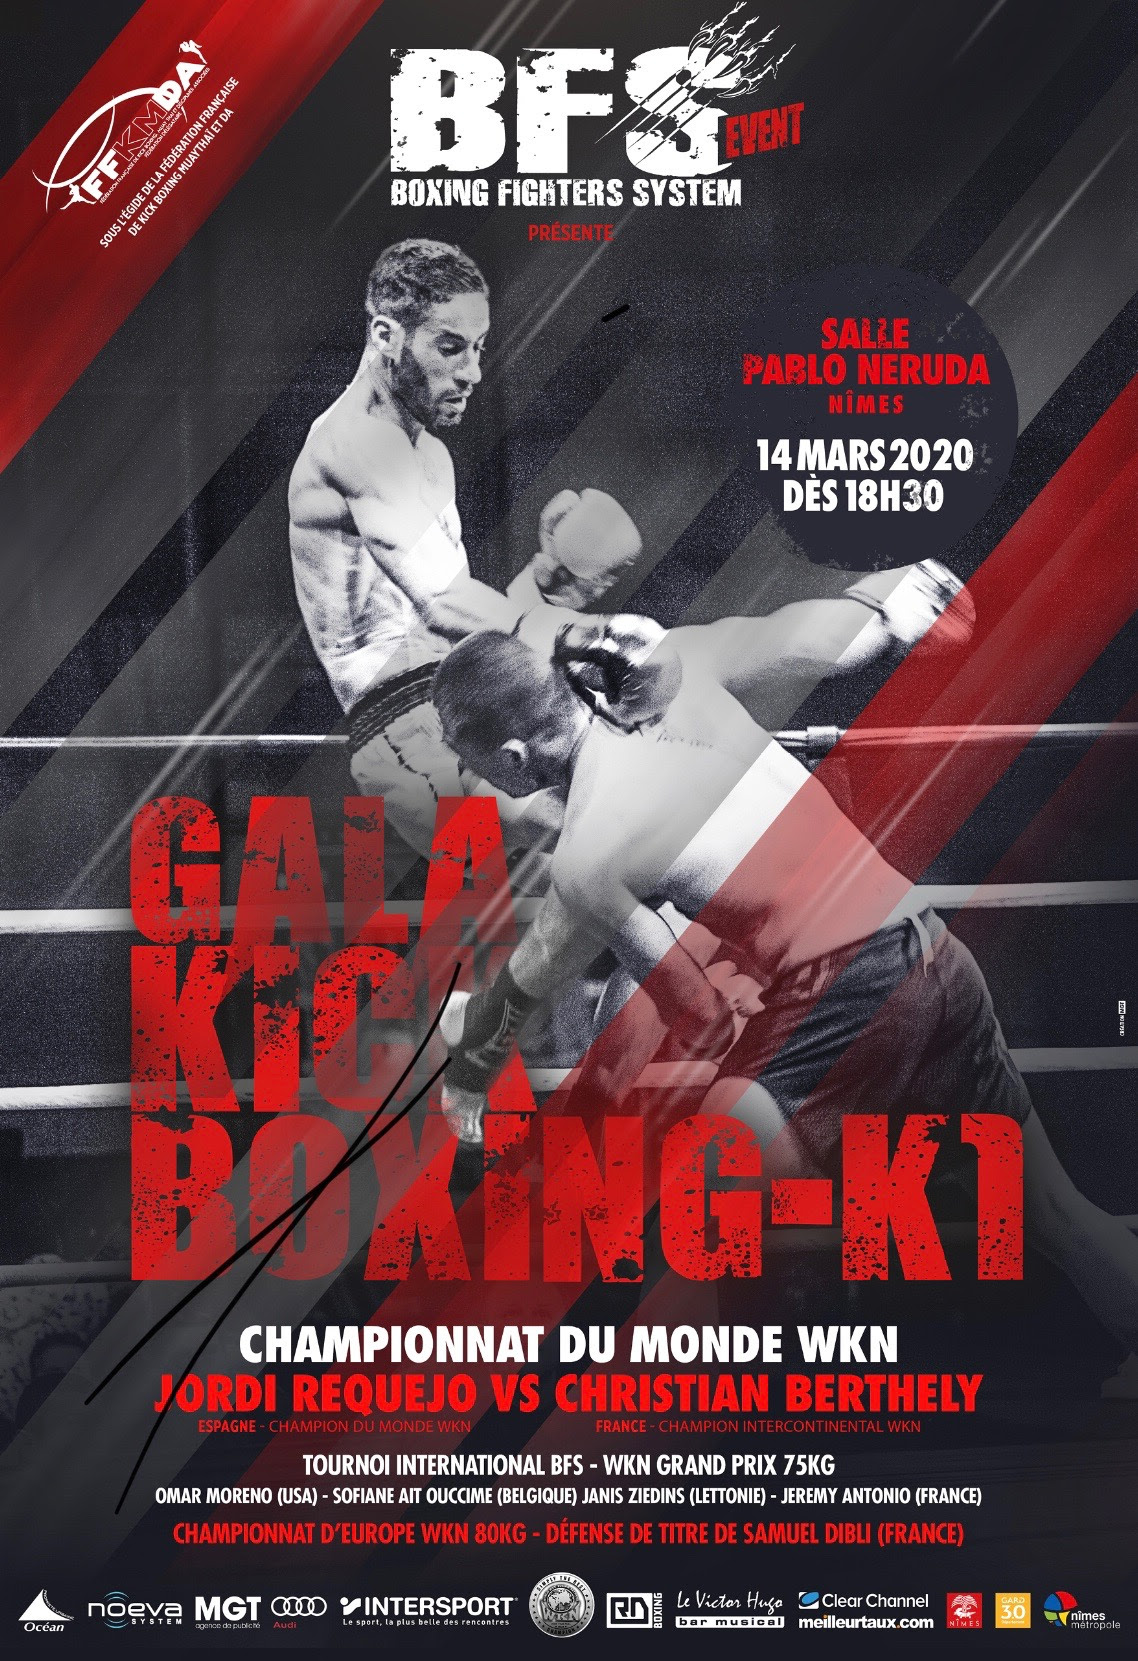 Boxing Fighters System 2: Three WKN titles on the line in Nimes, France -